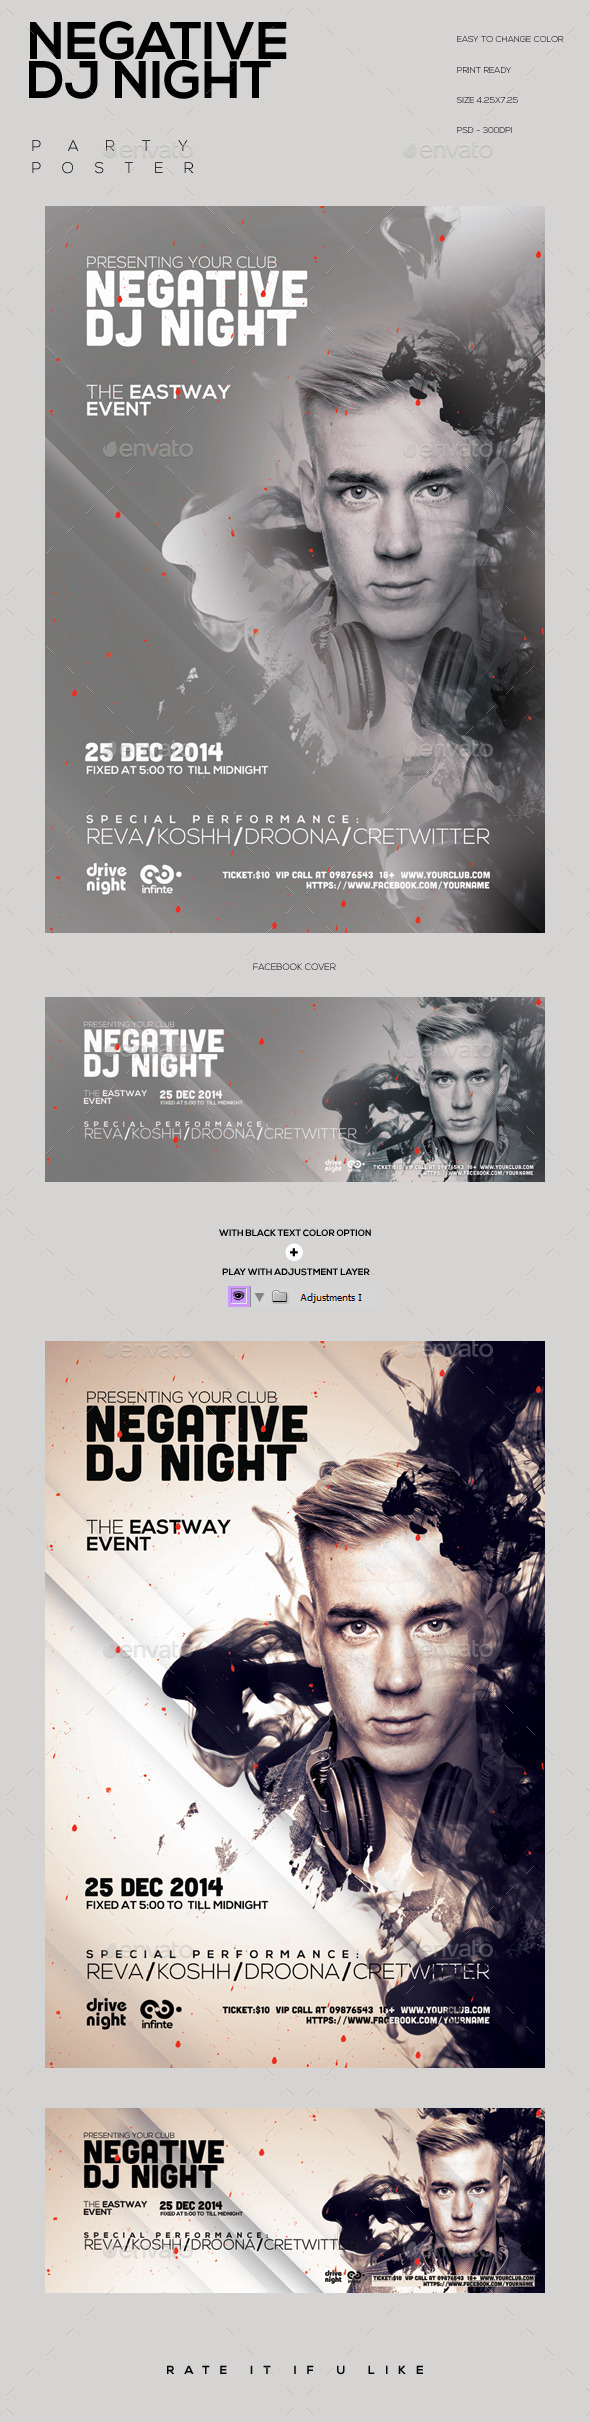 GraphicRiver Negative Dj Night Party Flyer 9673297